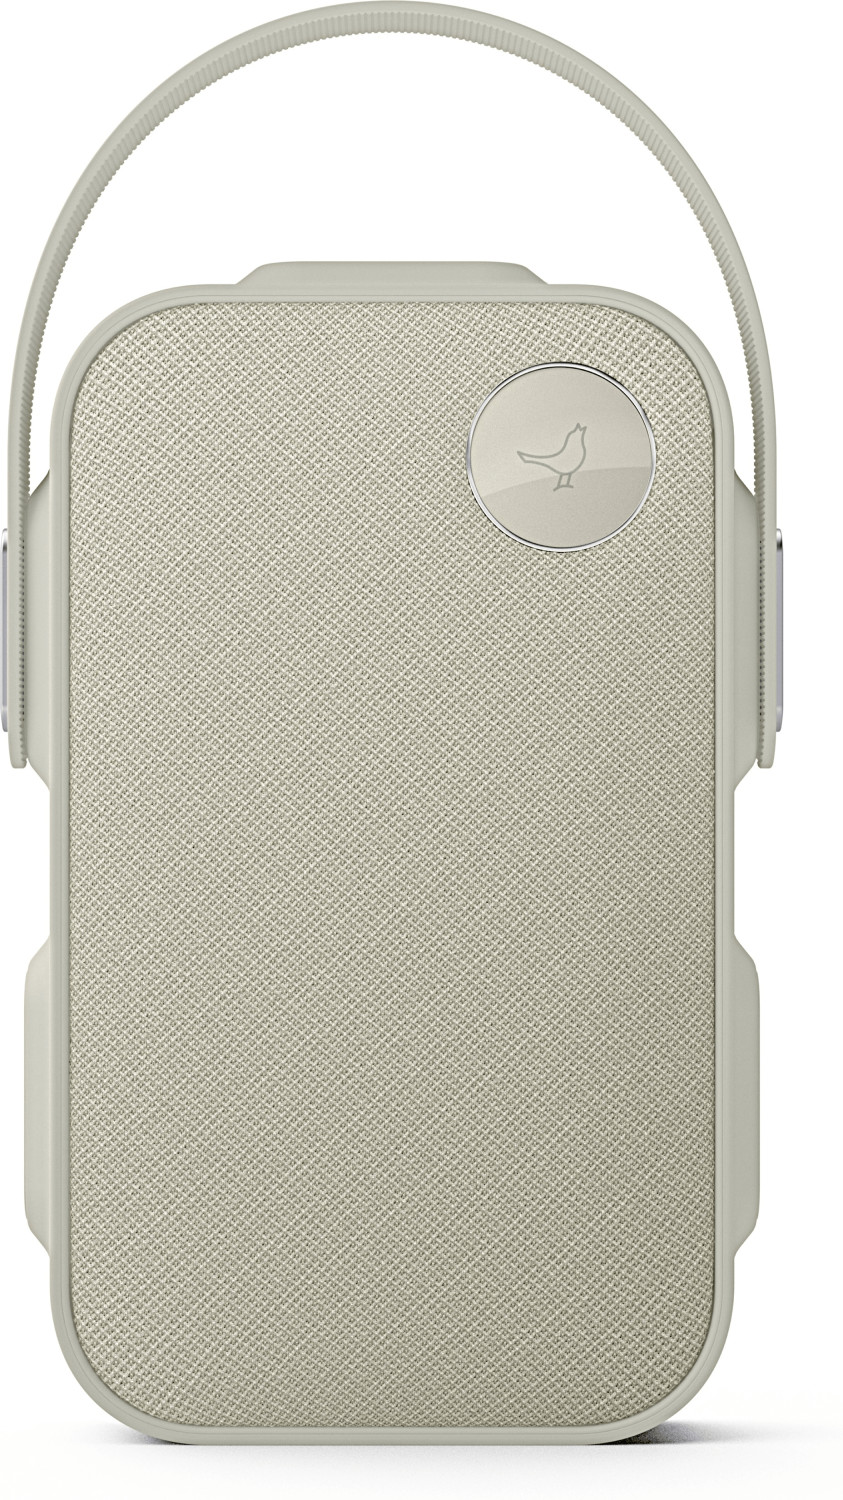 Image of Libratone One Click cloudy grey